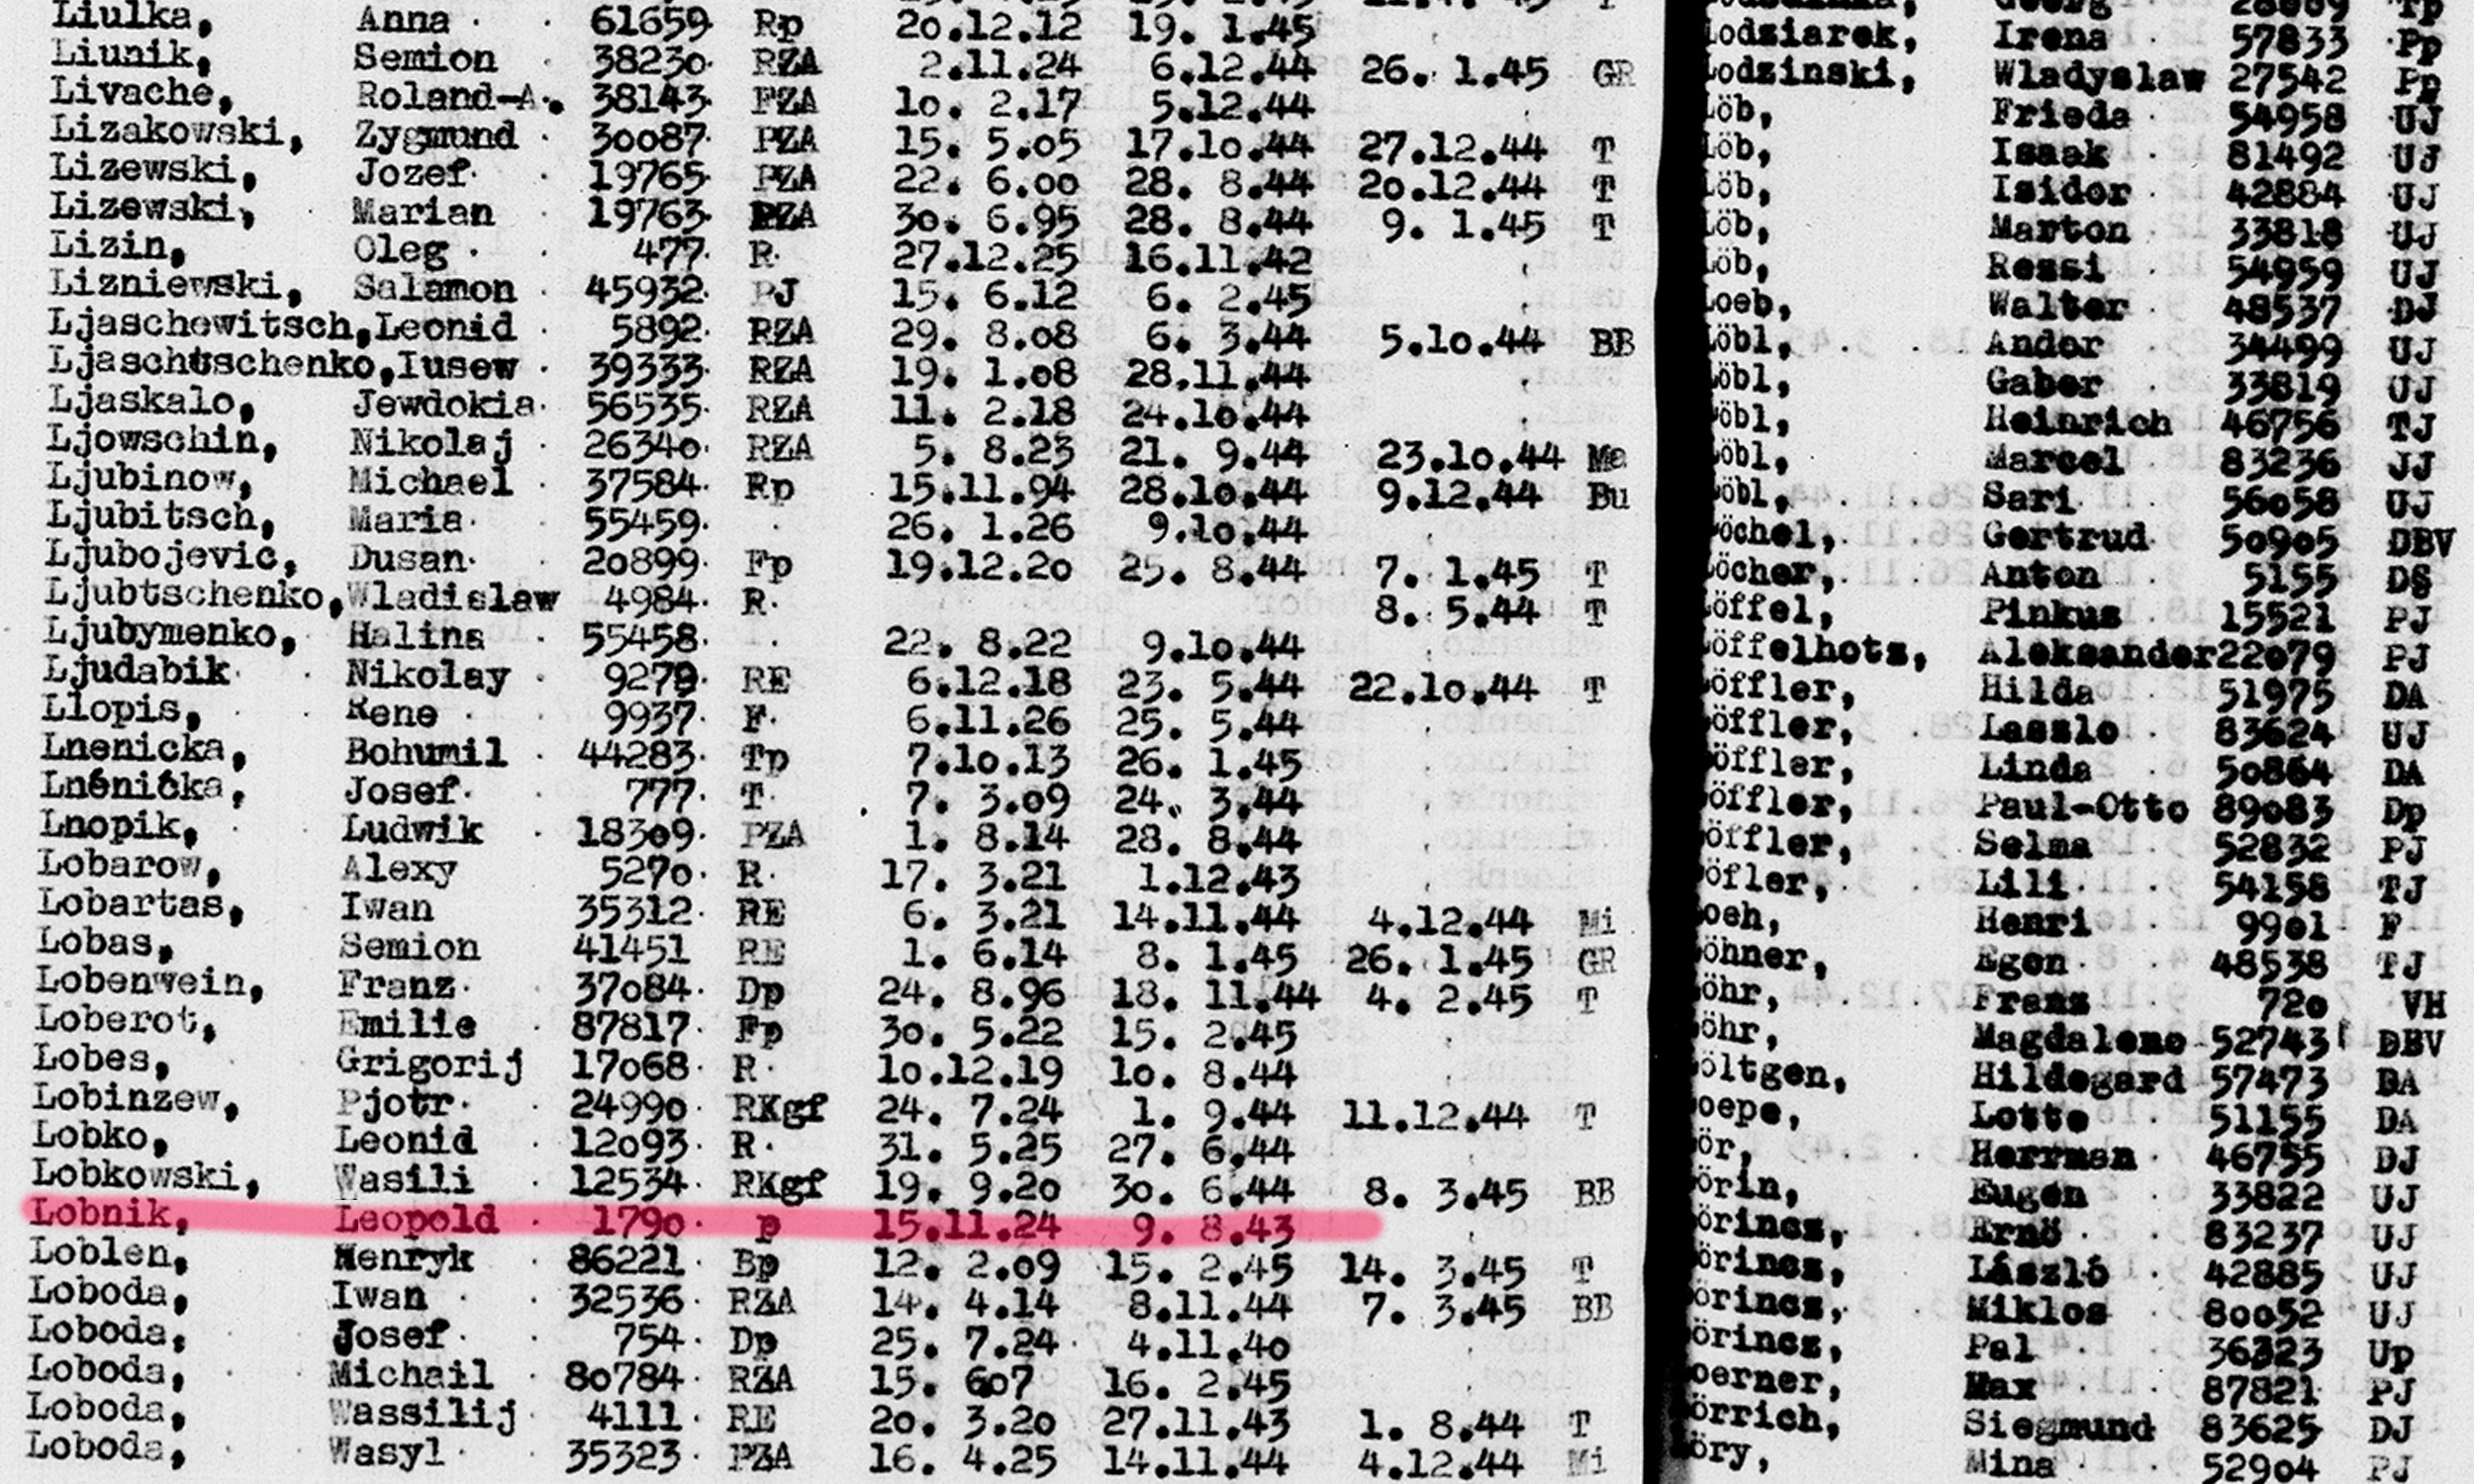 - Leopold Lobnik's Concentration Camp Entry Record